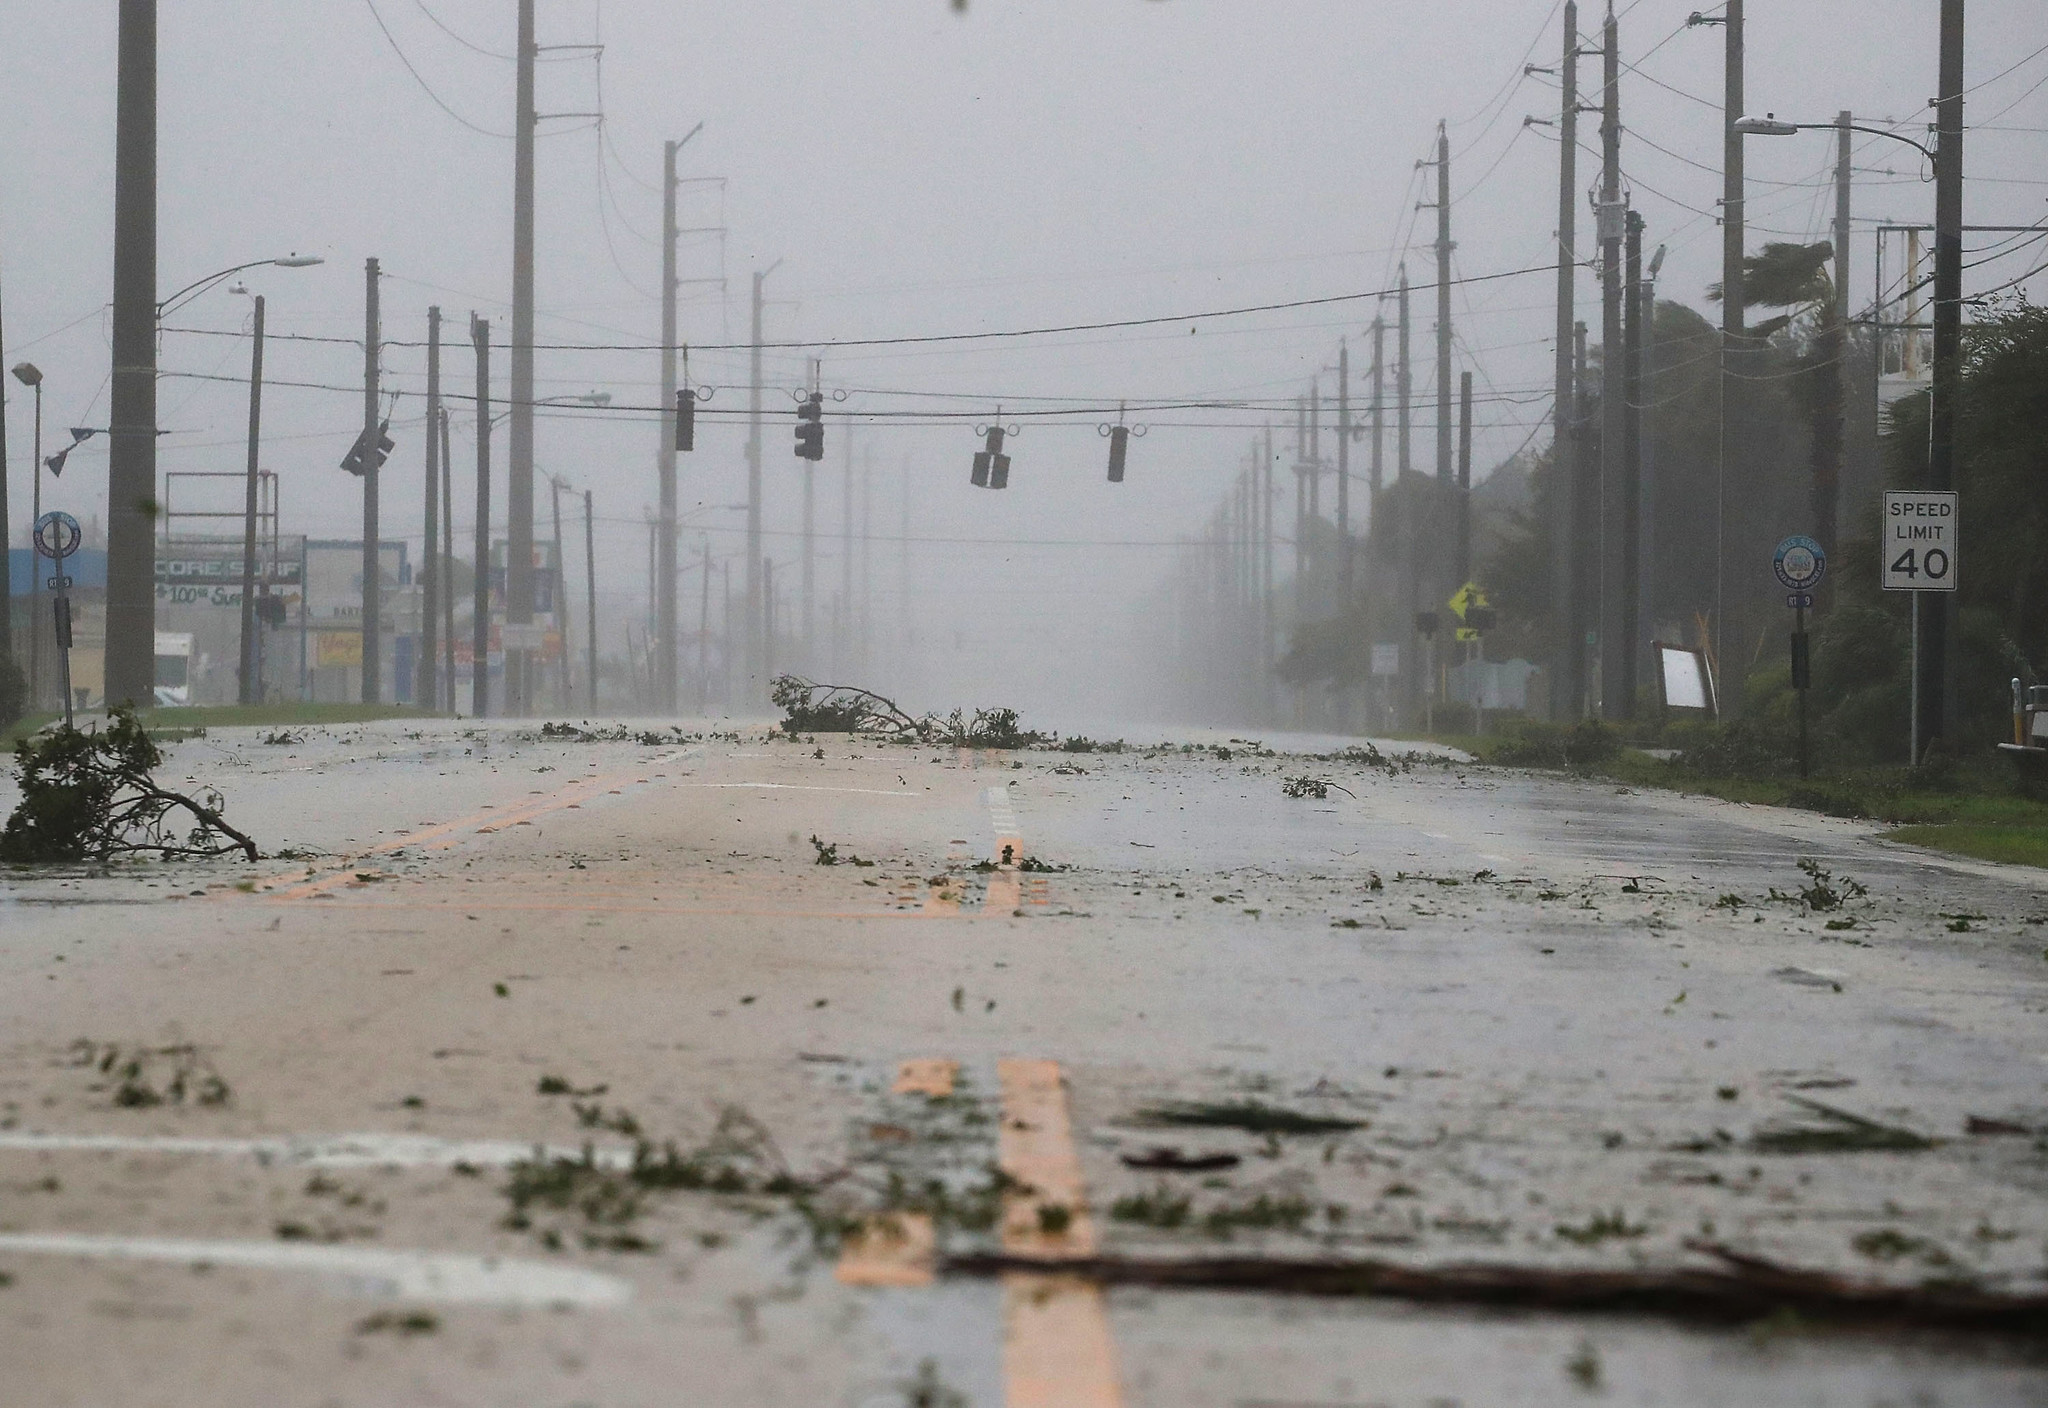 After Florida Dodged A Bullet From Hurricane Matthew